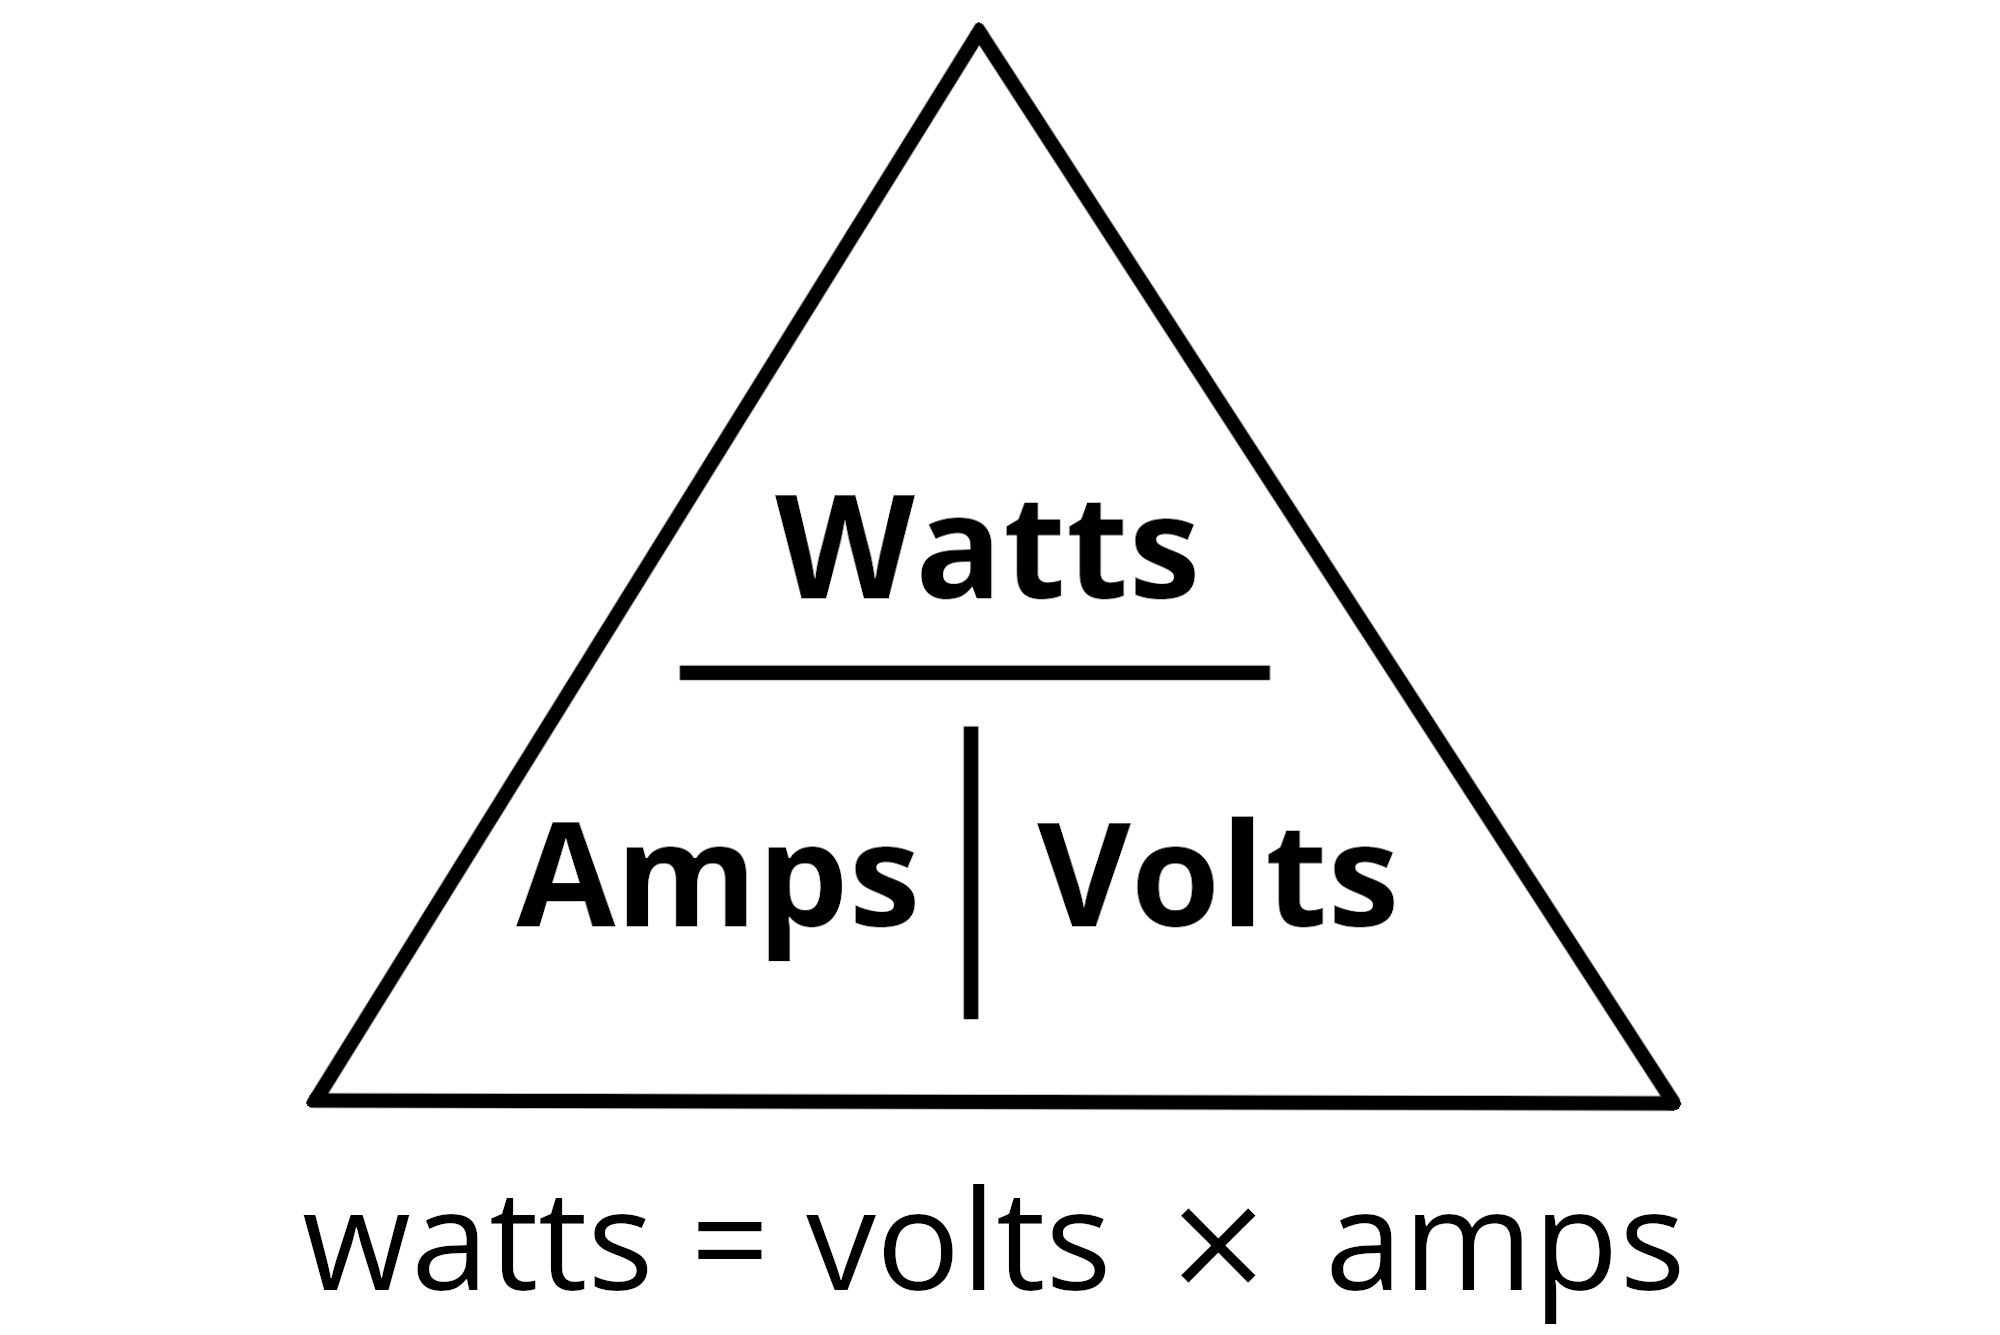 Power triangle illustrating the formula to convert volts to watts with watts being equal to volts times amps